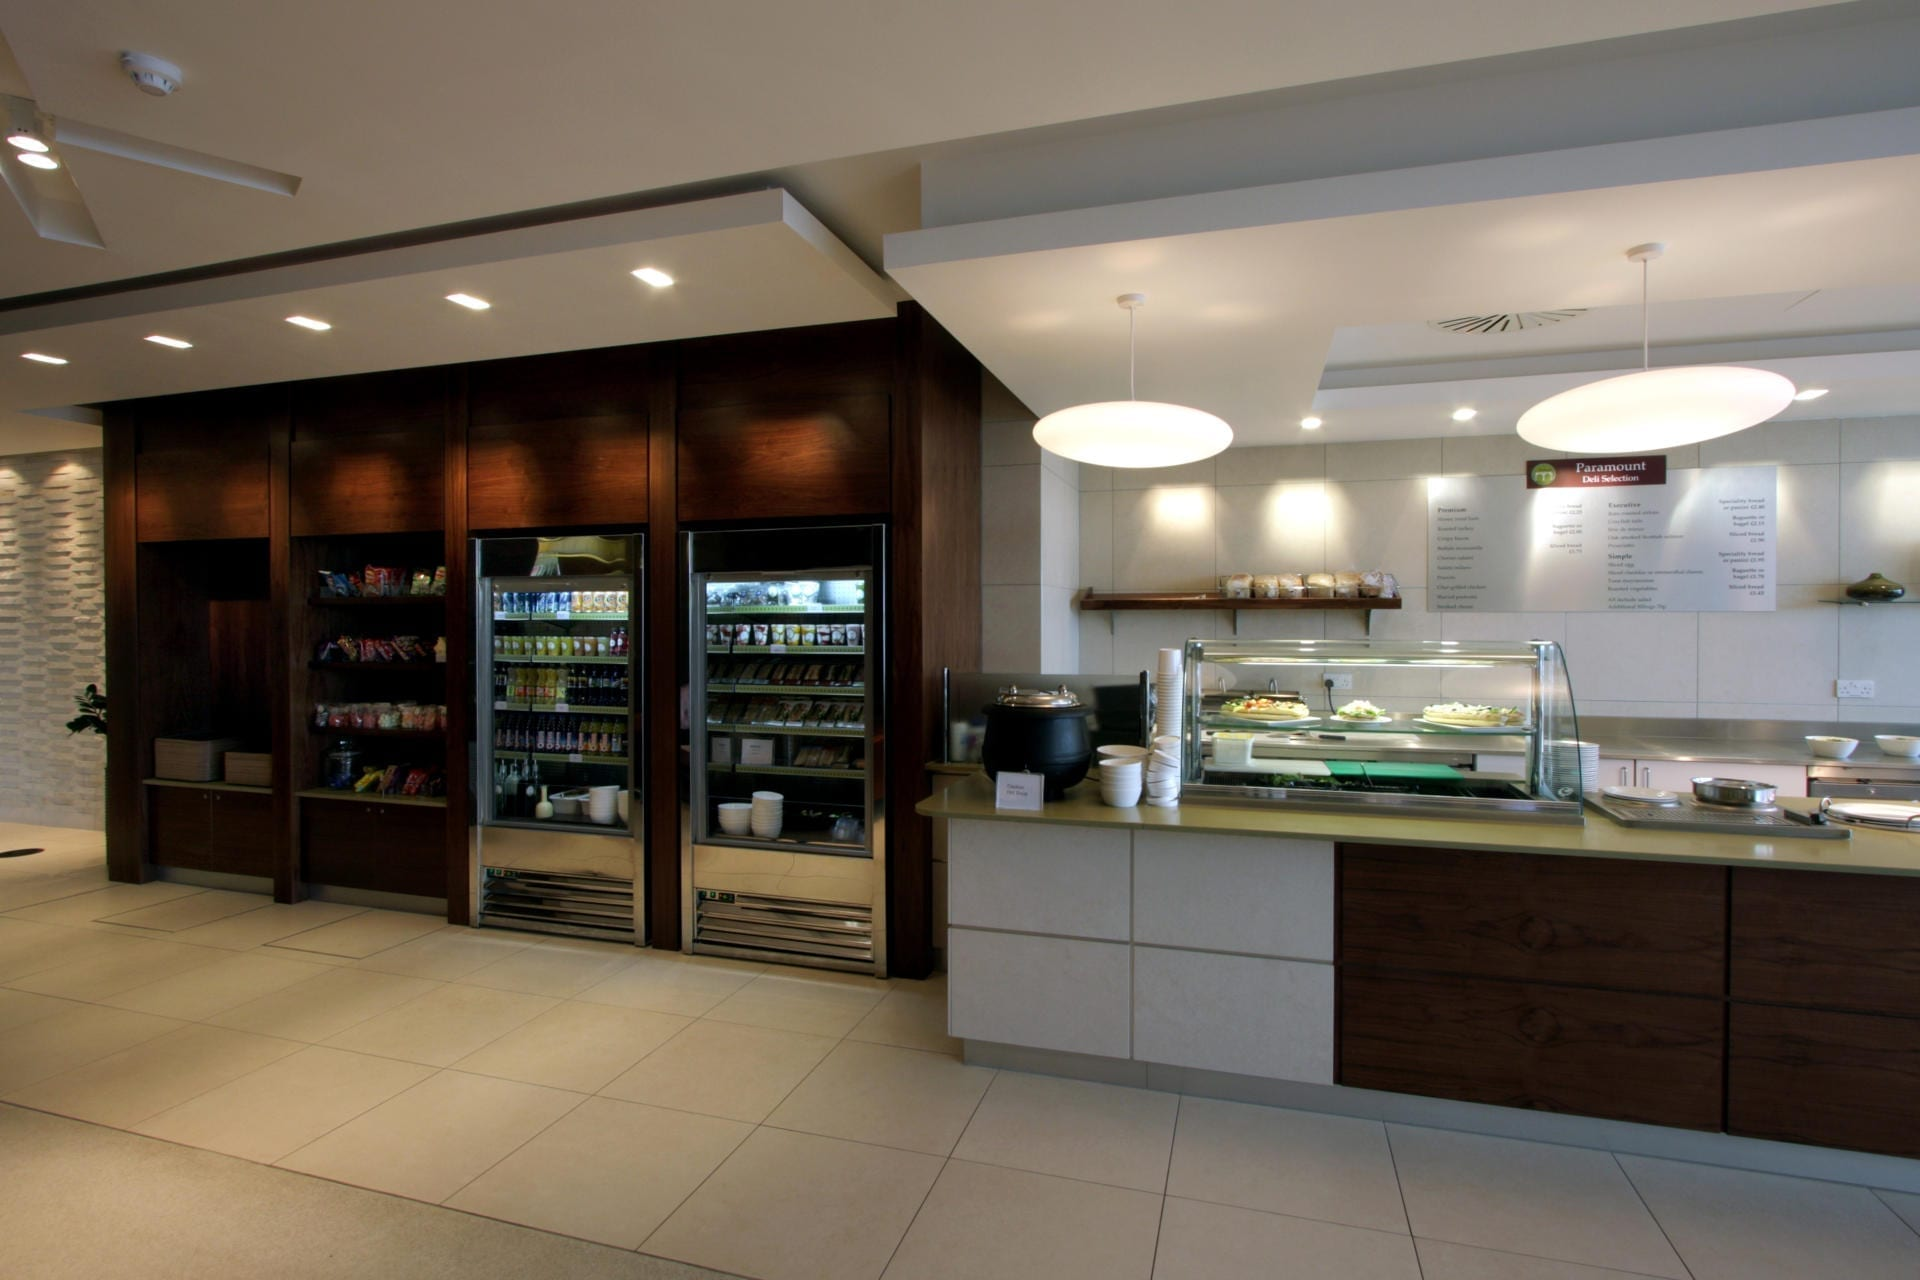 Paramount-Pictures-Charlton-House-Catering-Chiswick-Servery-Front-of-house-Servery-Food-Display-spacecatering_5